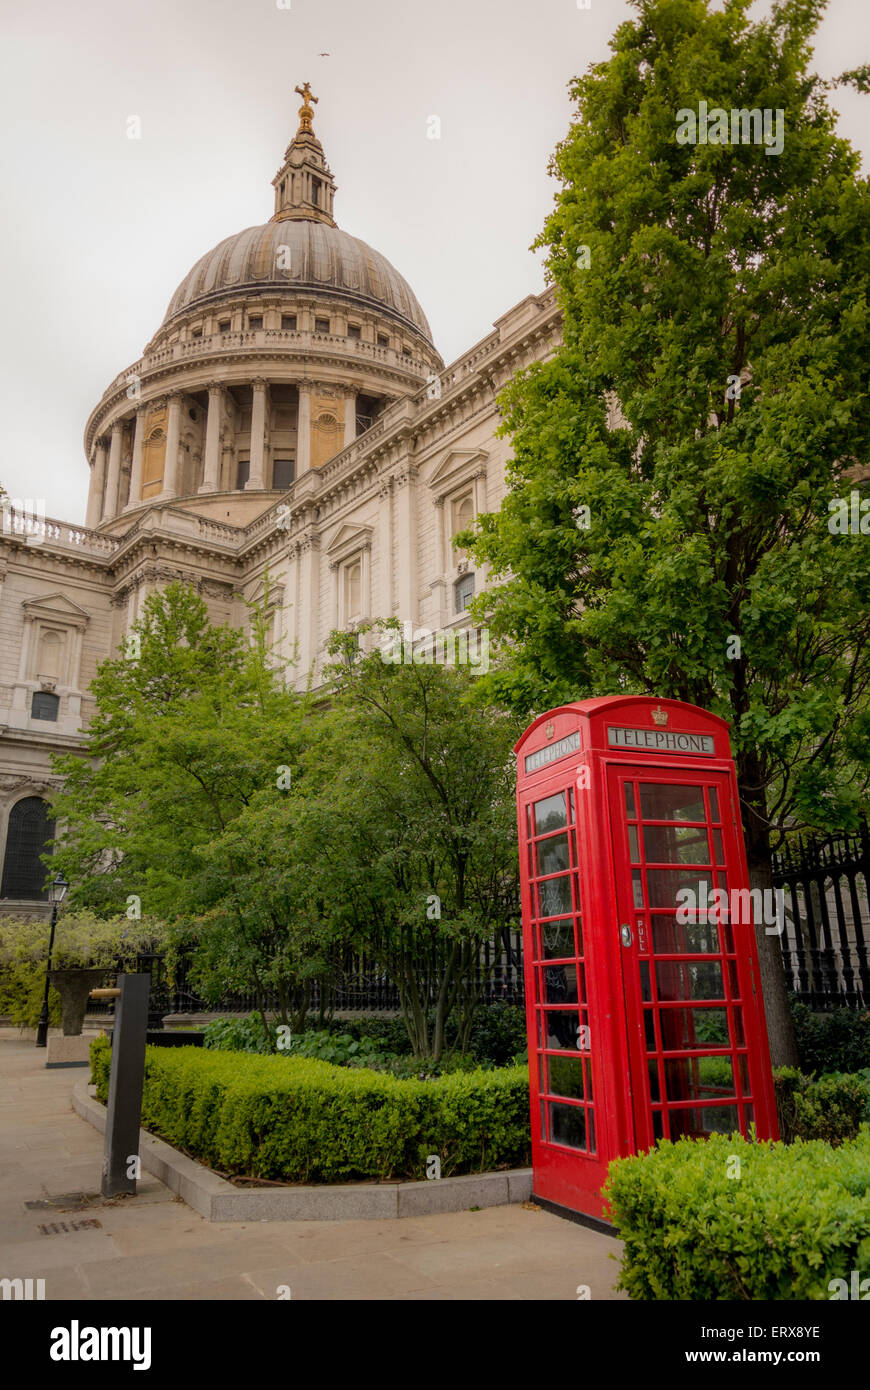 Traditional red telephone box outside St Paul's Cathedral, London, UK. - Stock Image